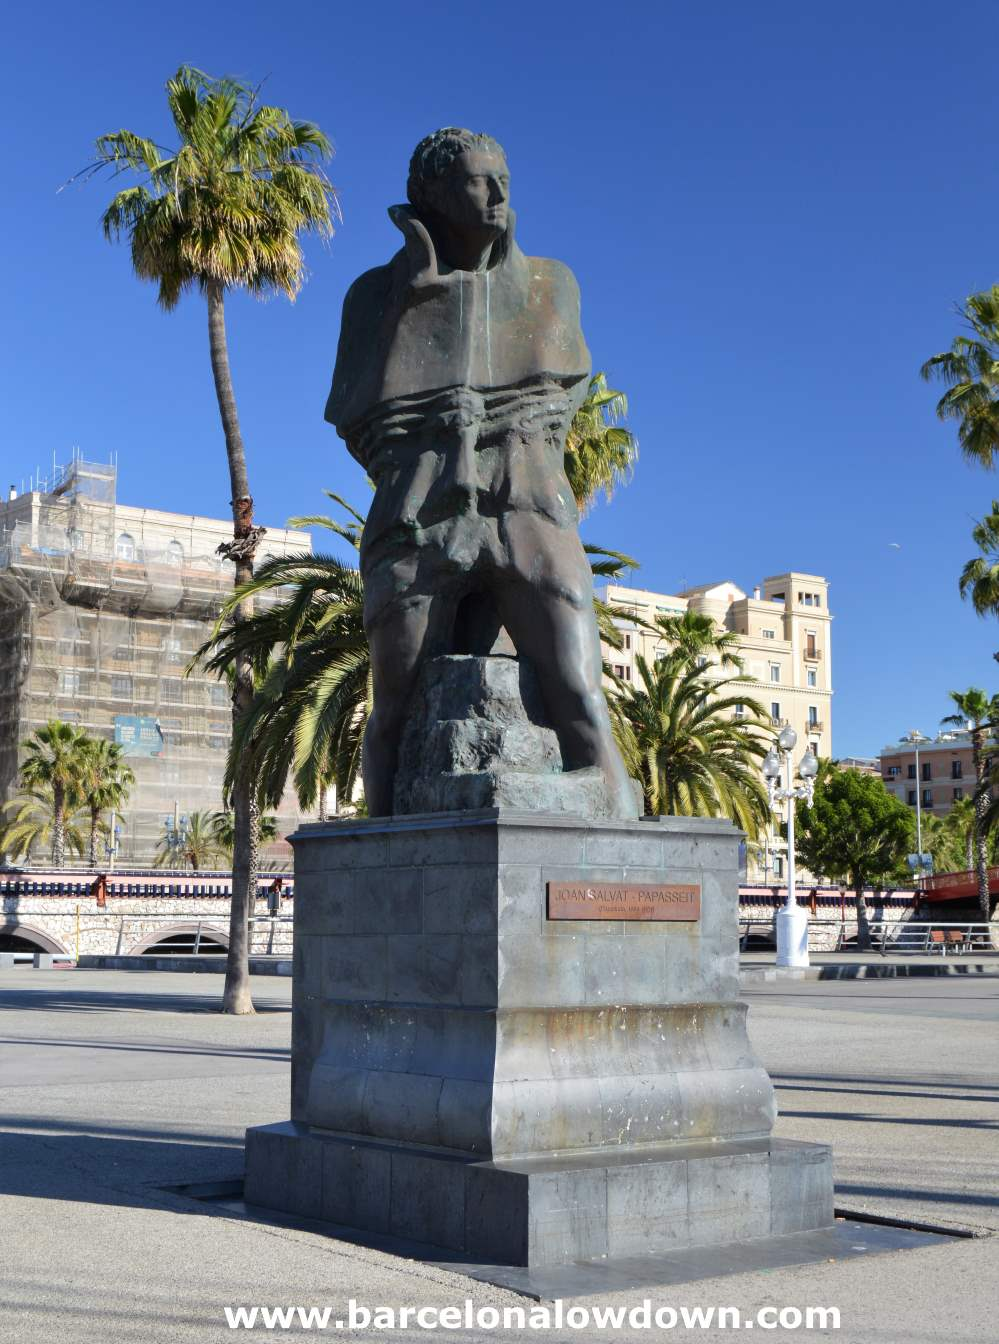 Bronze statue of the Spanish poes Joan Salvat Papasseit dressed as a night watchman overlooking the old port of Barcelona. There are several palm trees and a neo classic styled building in the background.